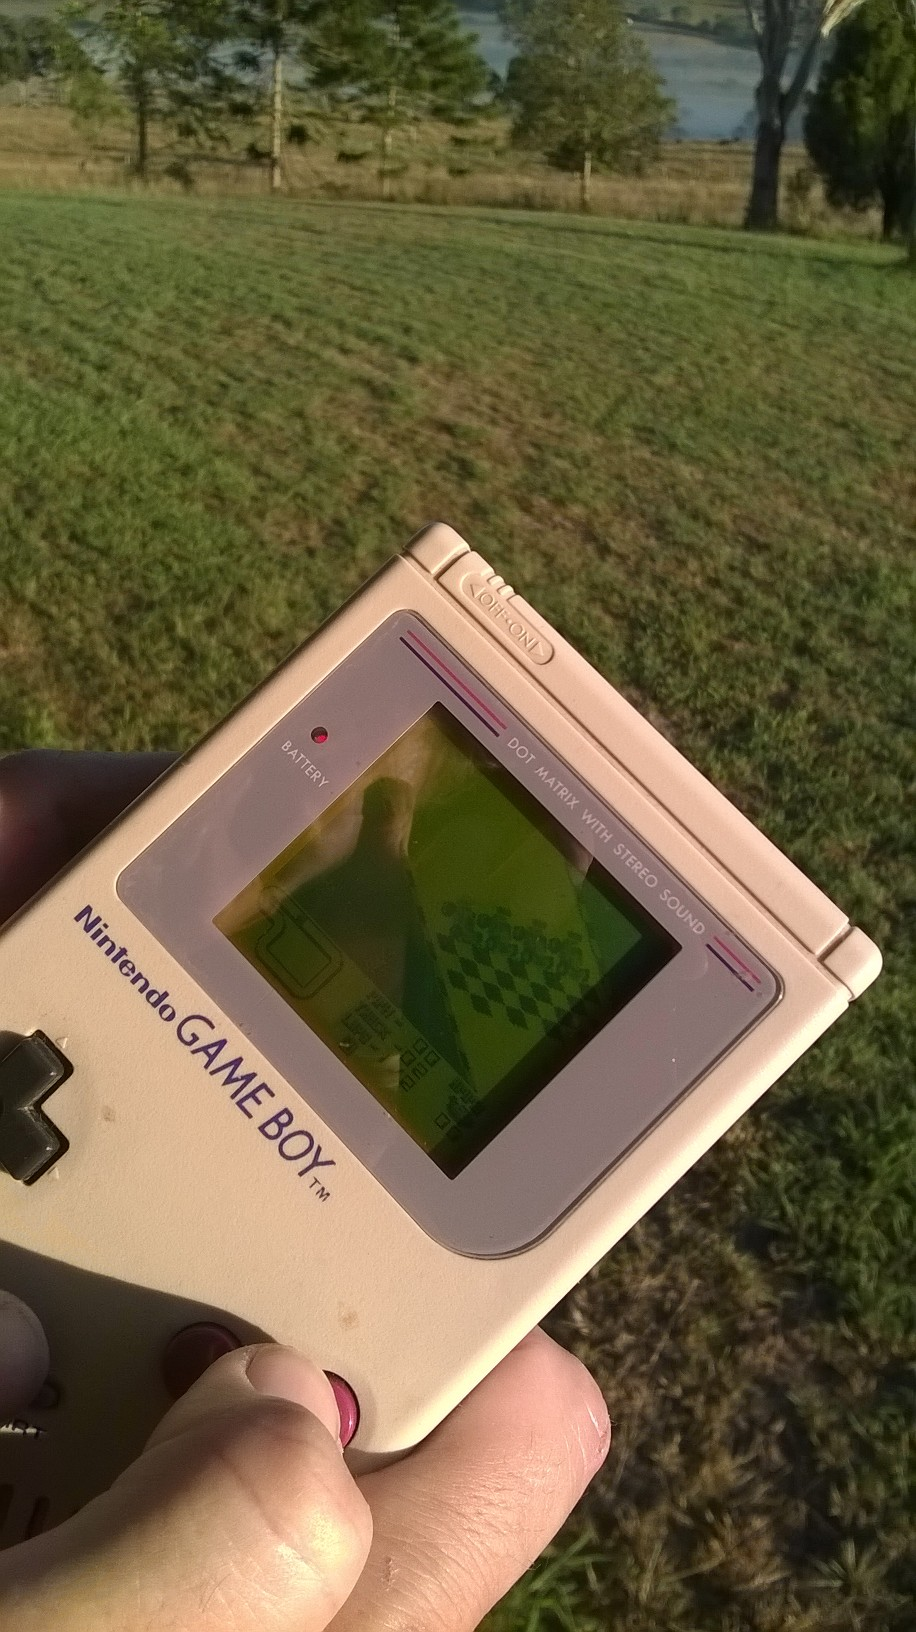 Nintendo forced millions of gamers out into the sun, in order to see the non-backlit screens of the Game Boy.